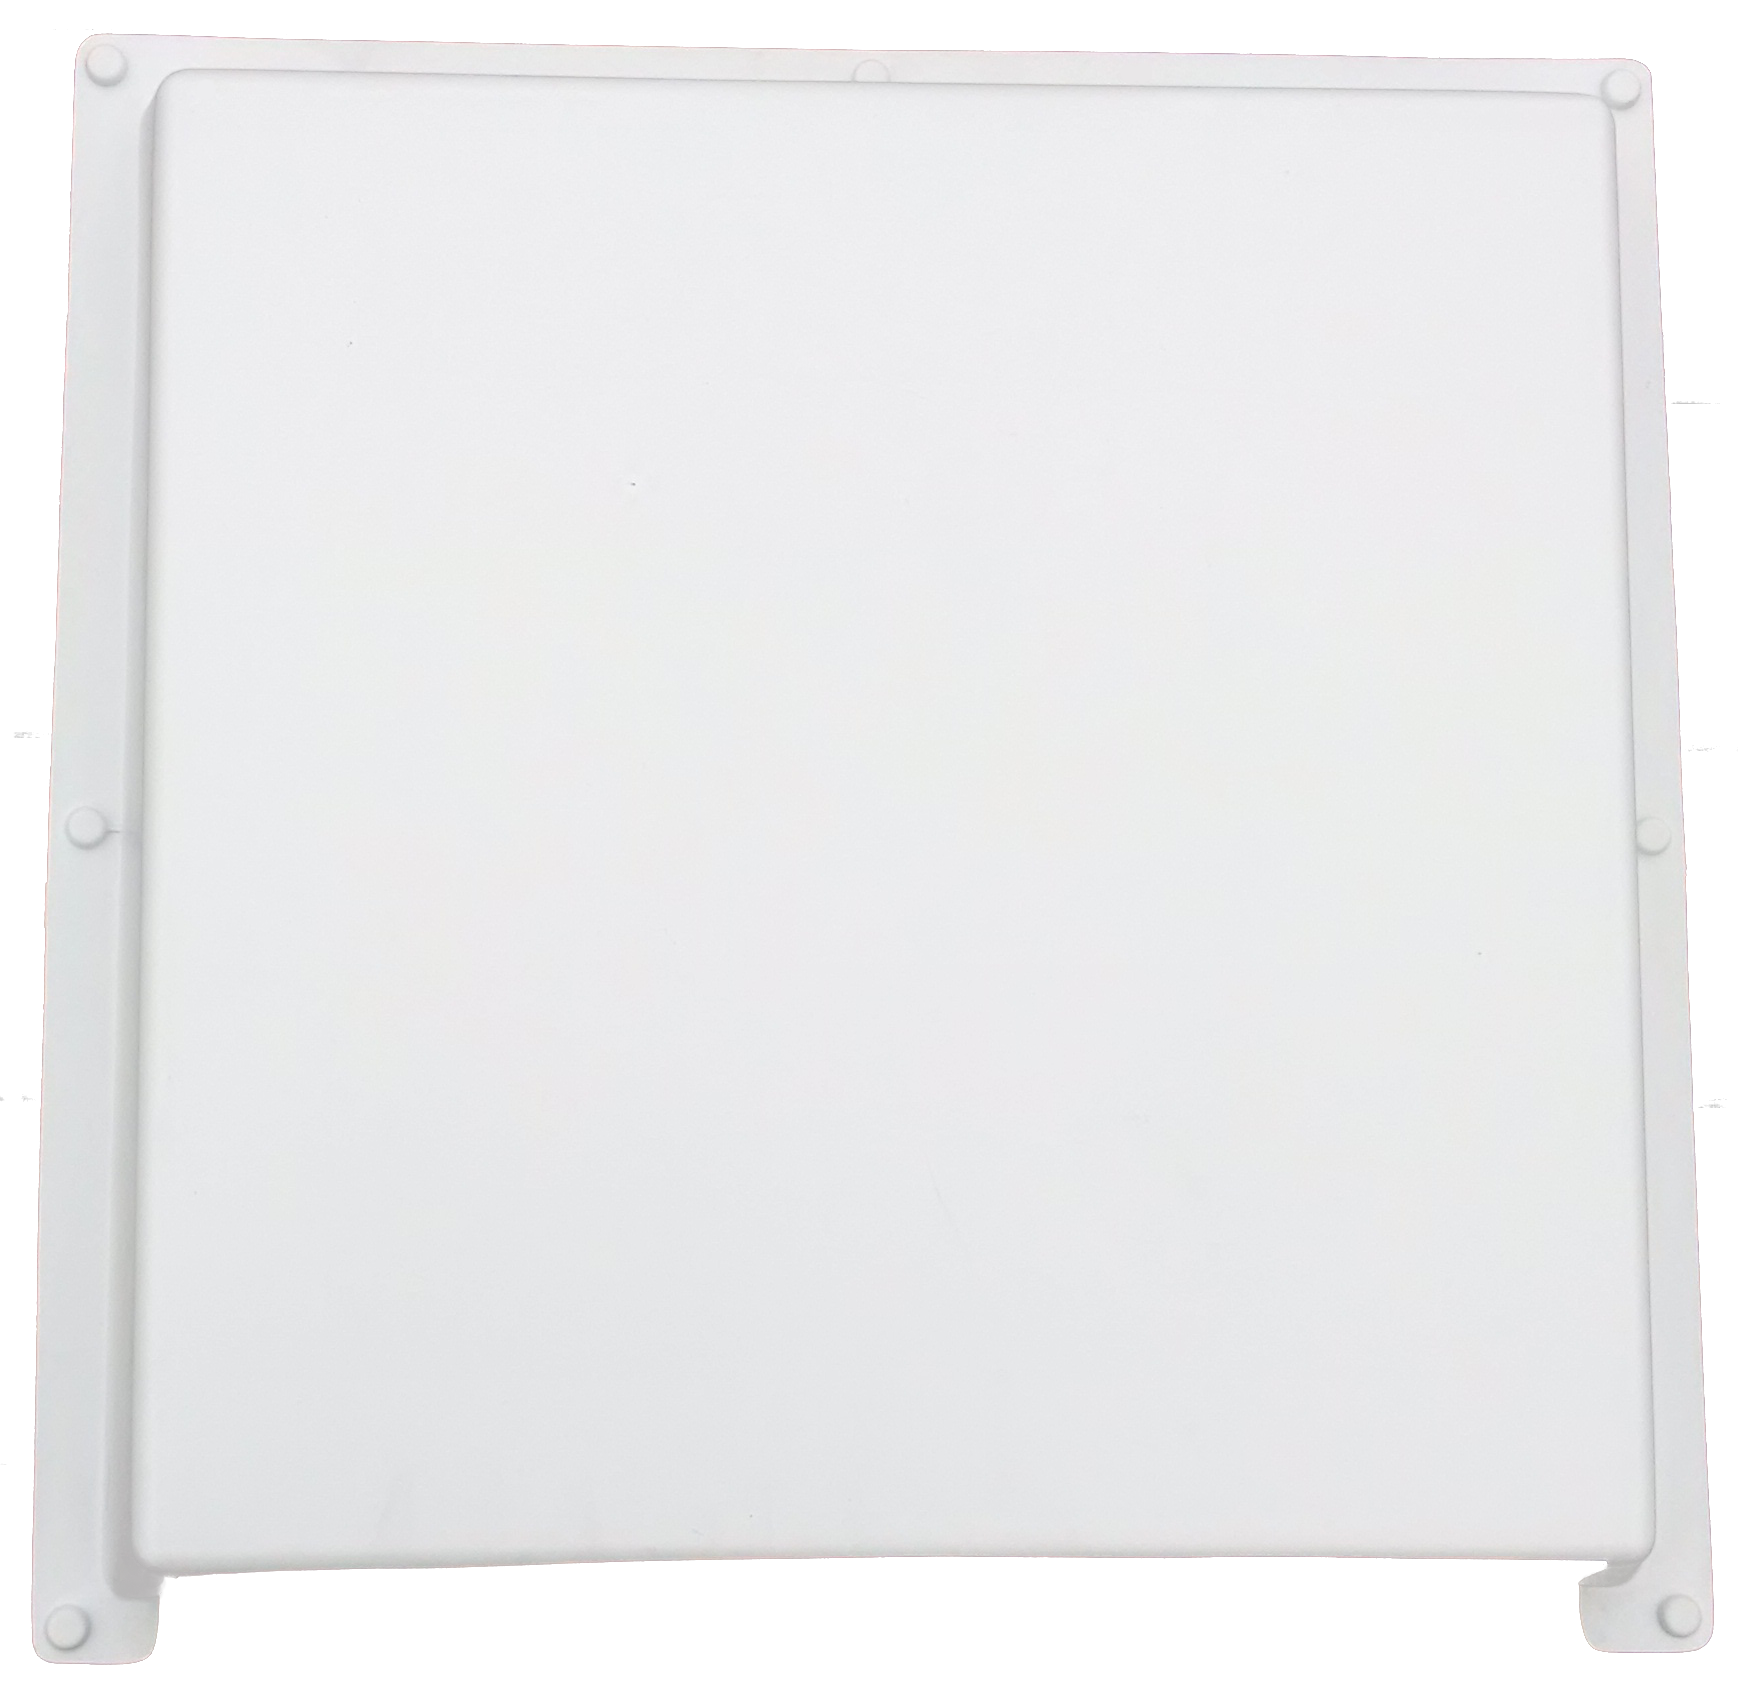 "ELIMA-DRAFT��  MAGNETIC AIR DEFLECTOR VENT COVER FOR HVAC <b>COMMERCIAL VENTS</b> 24"" X 24"""